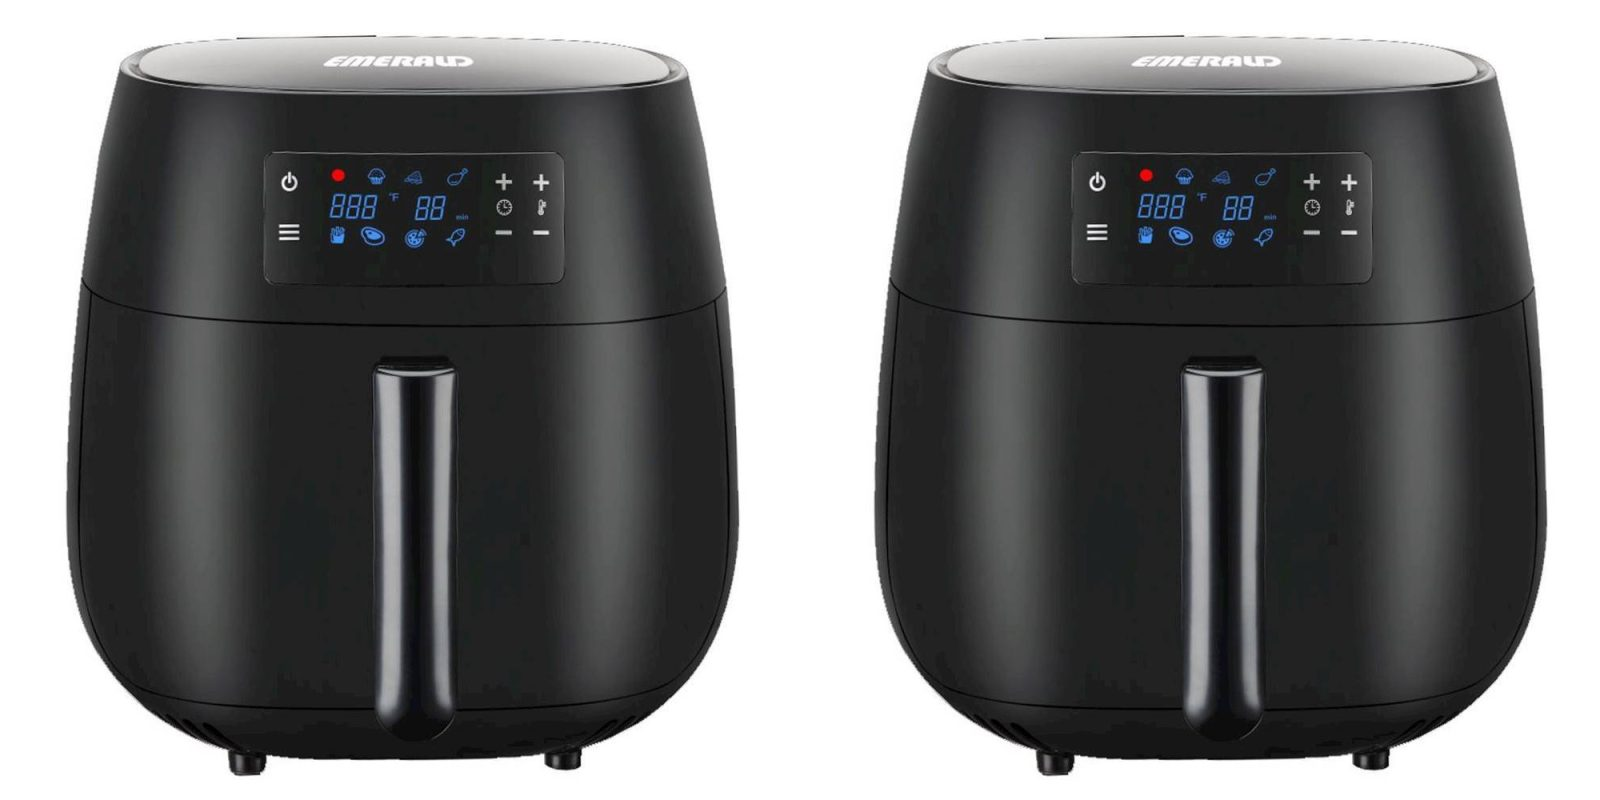 Just $30 will score you a brand new 4.2-quart Air Fryer today (Reg. up to $70)